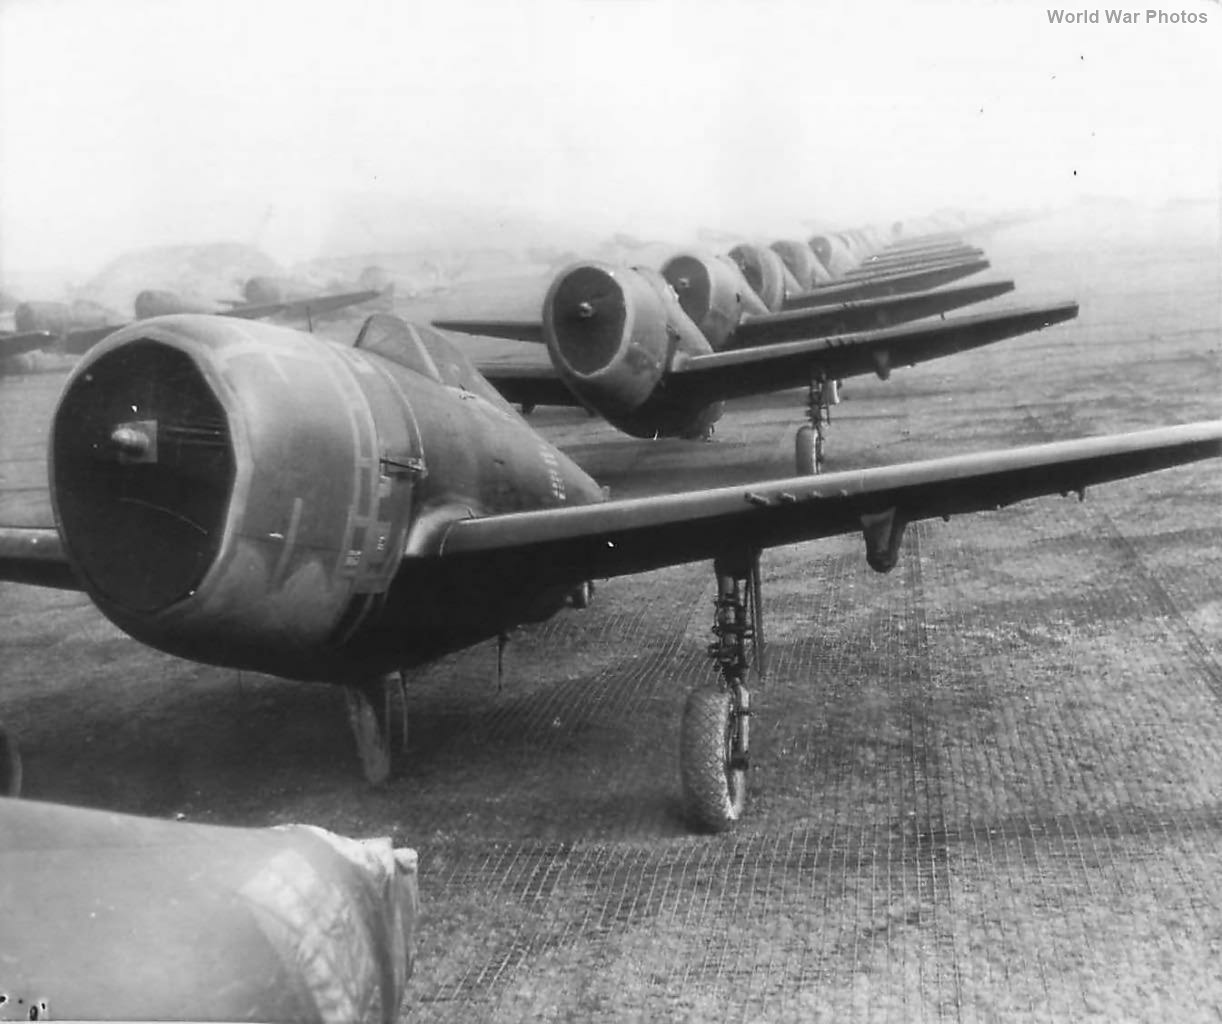 P-47 await assembly at Speke Airfield near Liverpool